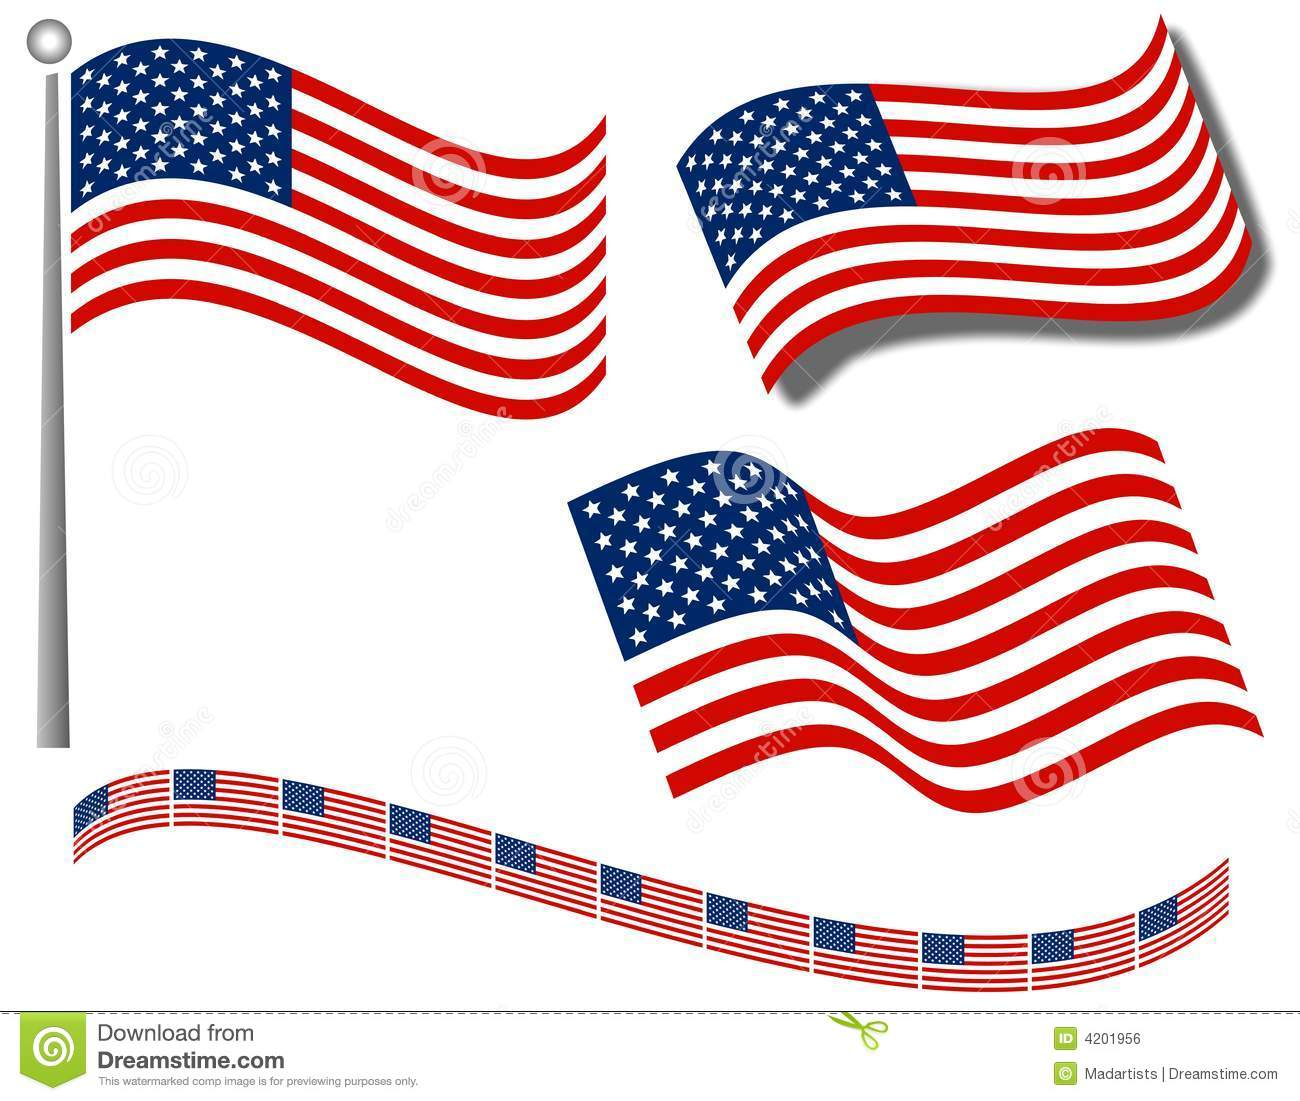 American Flags Clip Art And .-American Flags Clip Art and .-4